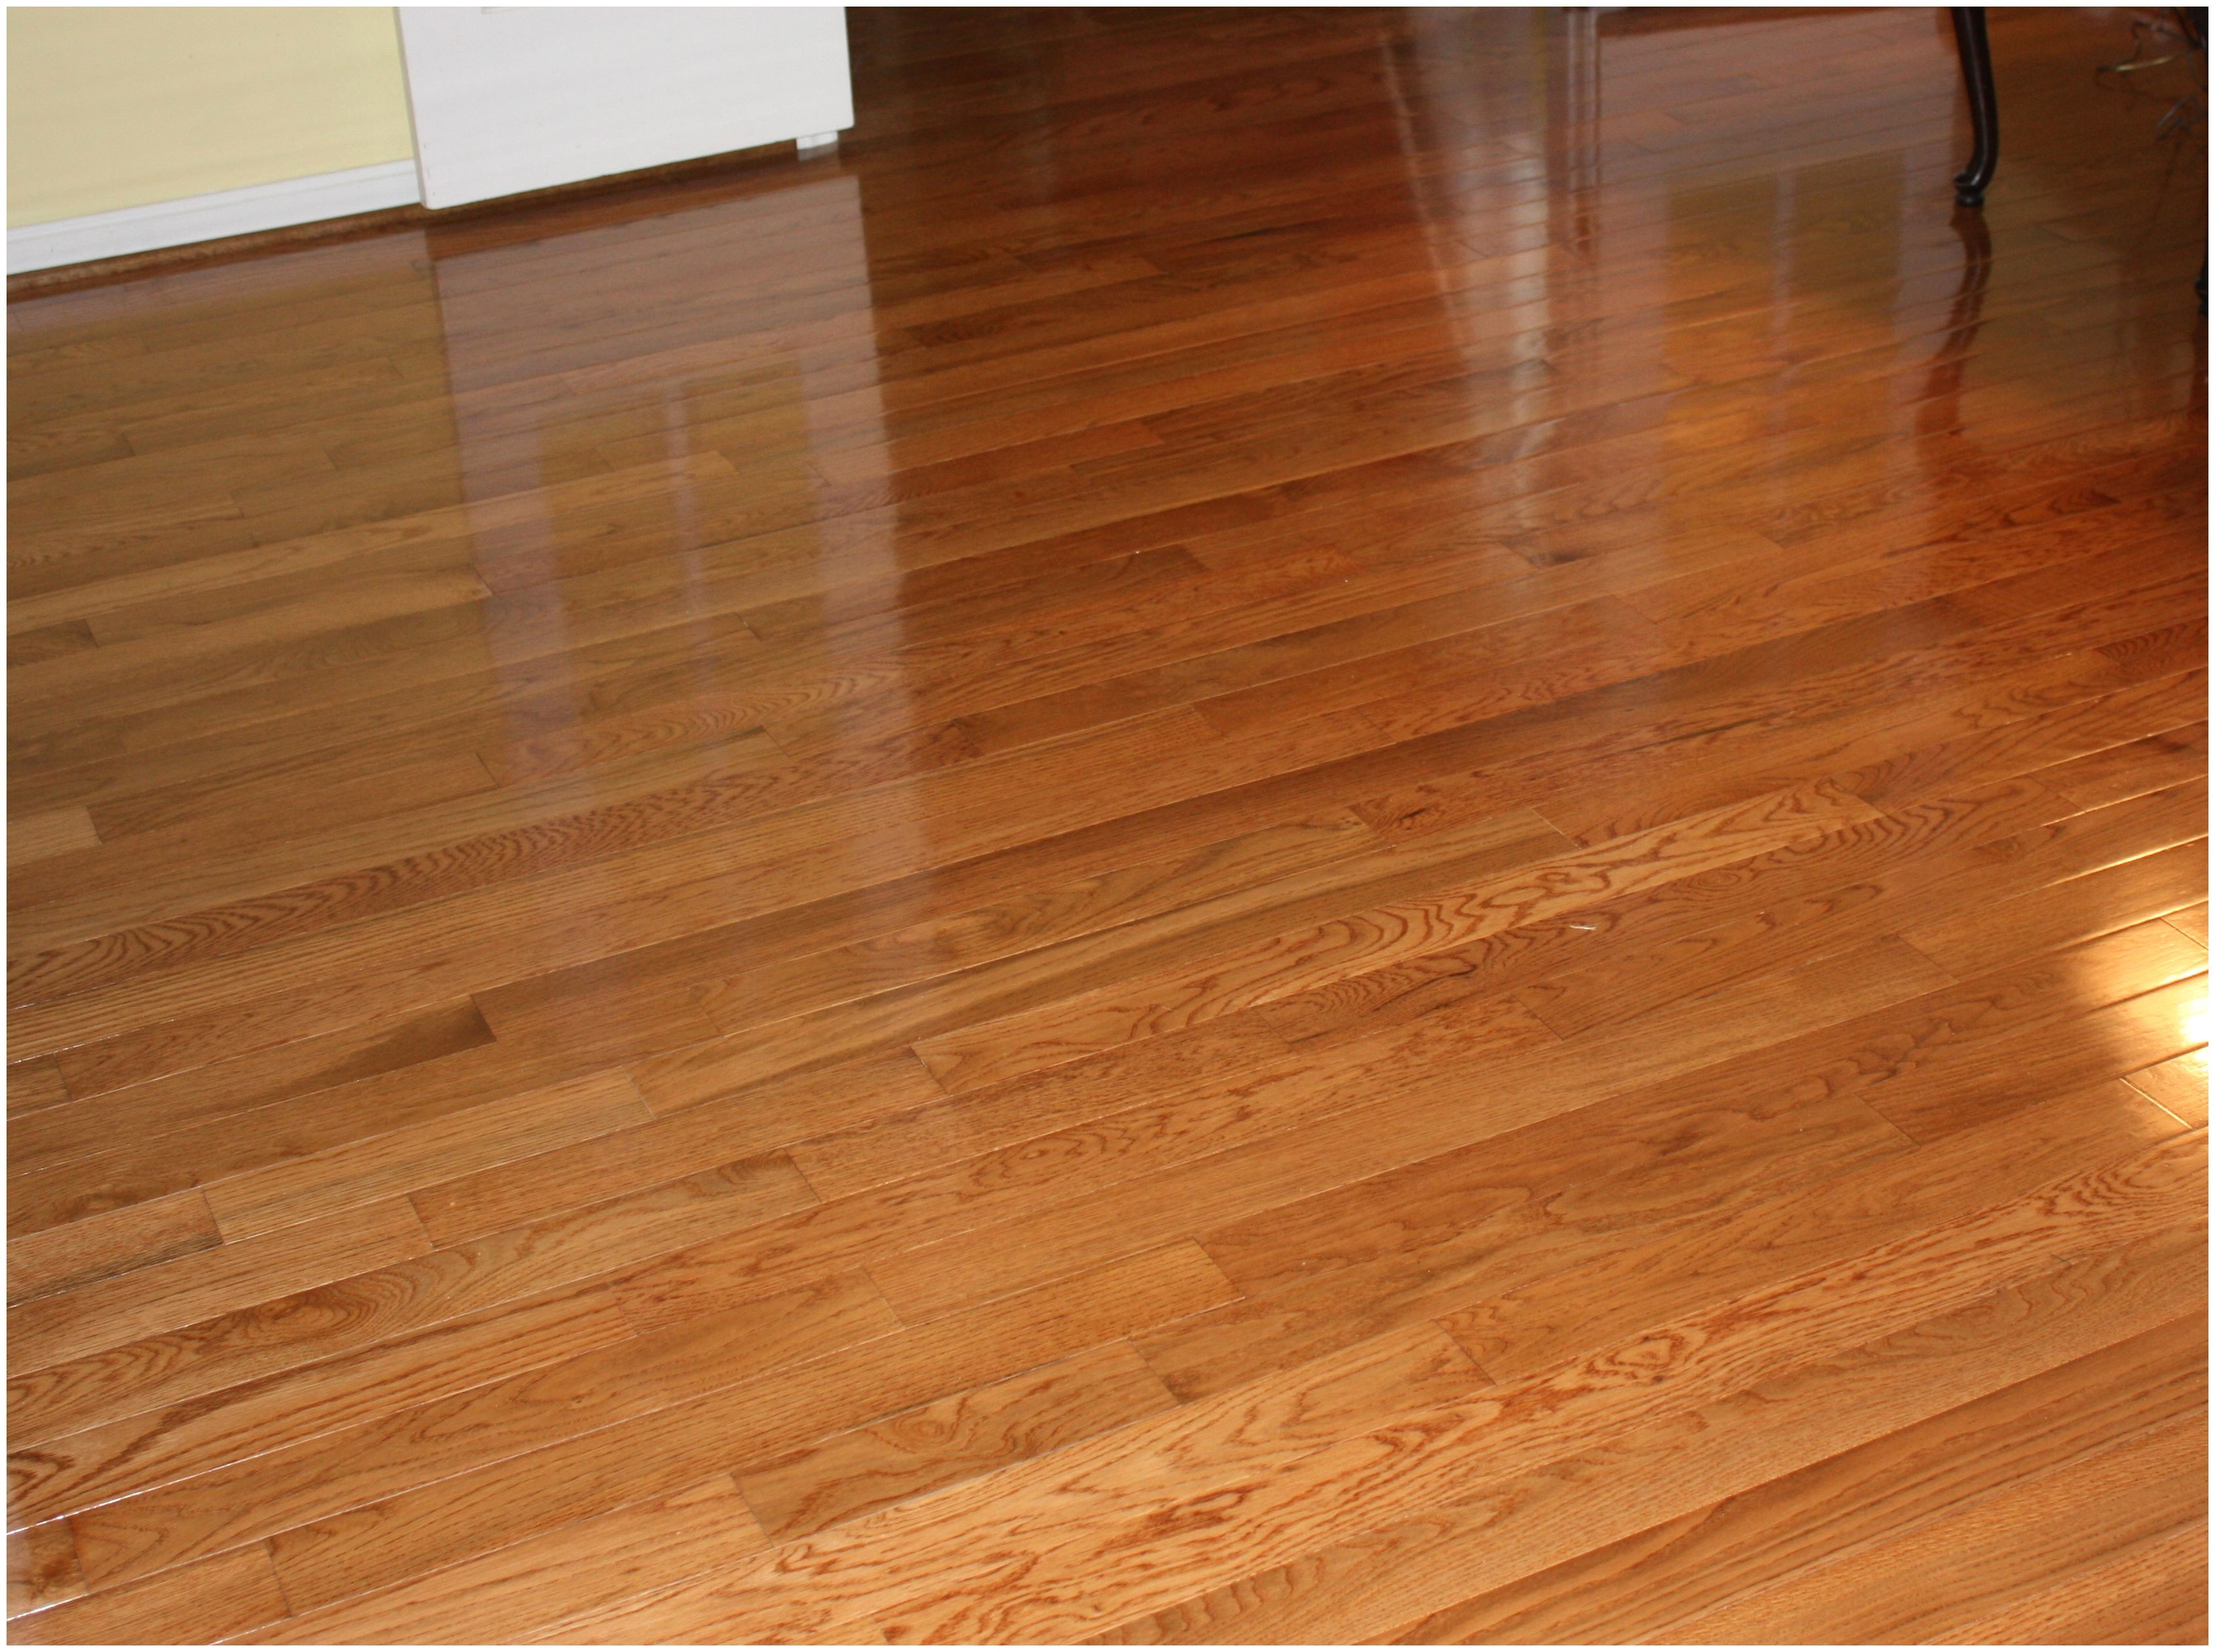 28 attractive Walnut Hardwood Flooring 2021 free download walnut hardwood flooring of 18 new engineered hardwood flooring pros and cons photos dizpos com with regard to engineered hardwood flooring pros and cons awesome hardwood floor design cheap